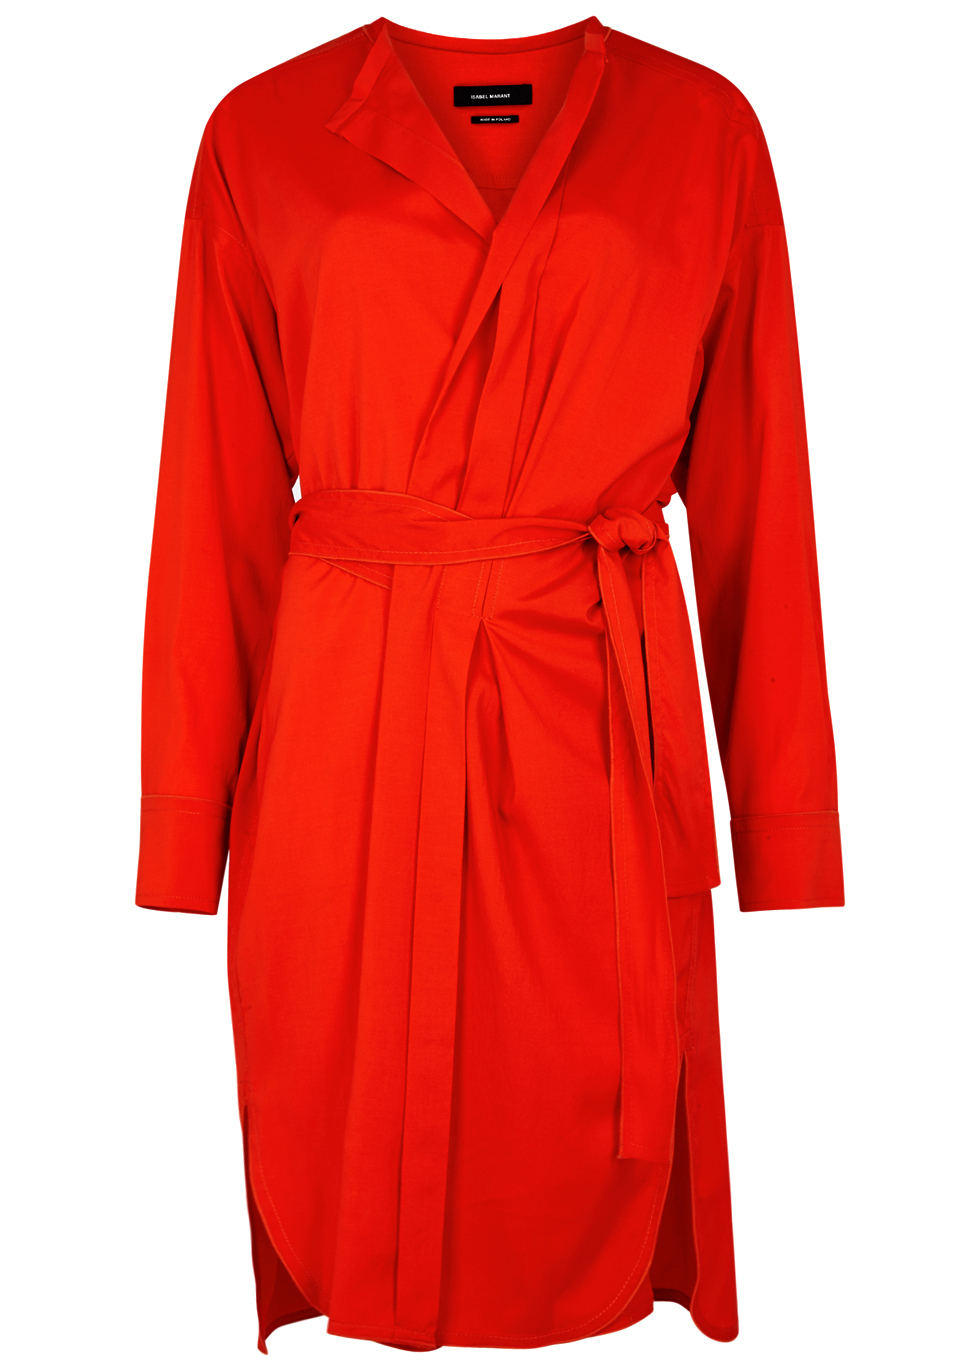 Dias Red Silk Blend Wrap Dress - style: faux wrap/wrap; neckline: v-neck; pattern: plain; waist detail: belted waist/tie at waist/drawstring; predominant colour: true red; occasions: evening; length: just above the knee; fit: body skimming; fibres: silk - mix; sleeve length: long sleeve; sleeve style: standard; texture group: silky - light; pattern type: fabric; season: a/w 2016; wardrobe: event